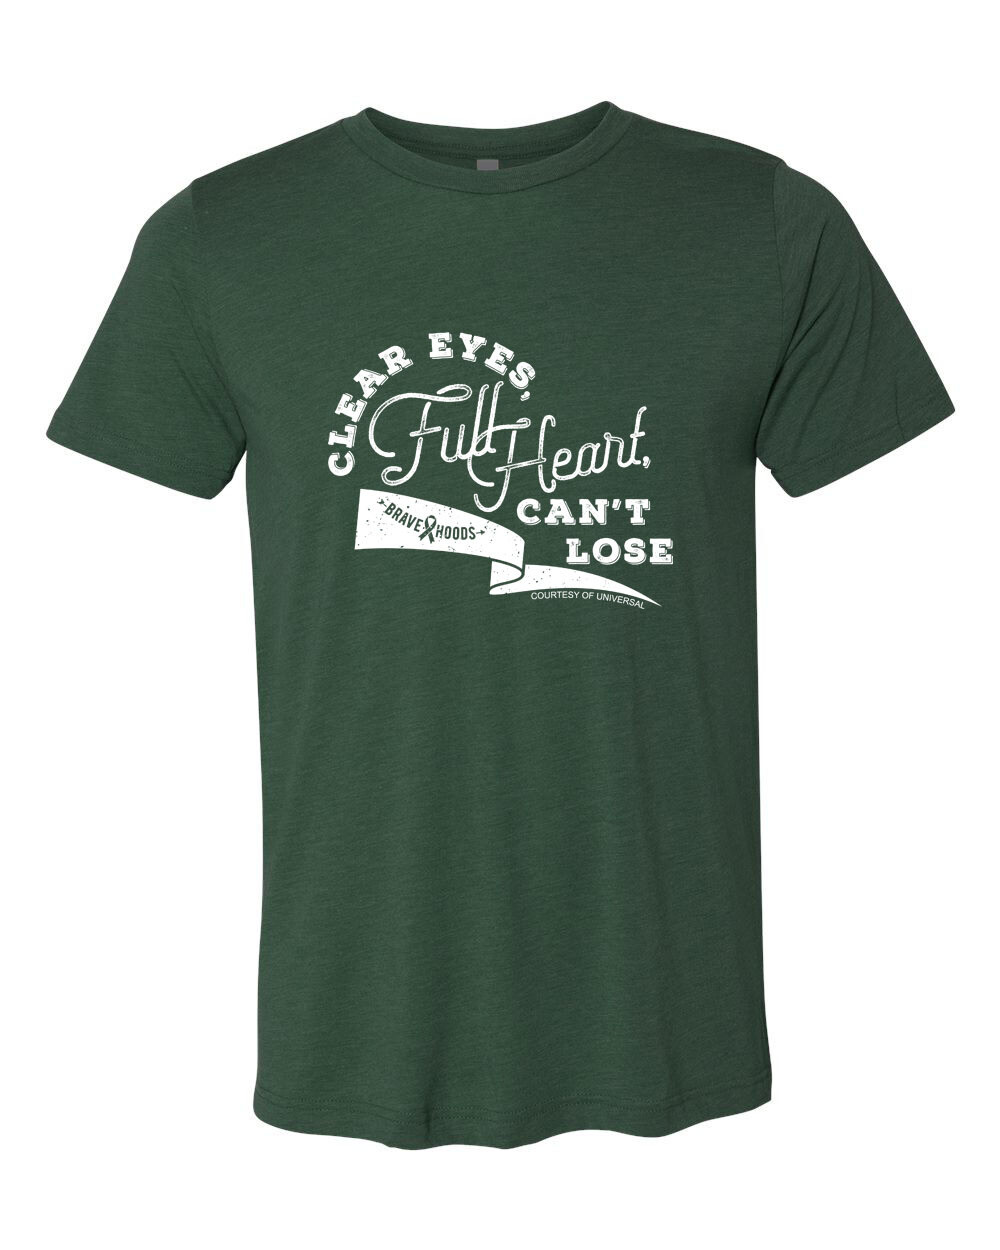 Clear Eyes T-Shirt - Adult